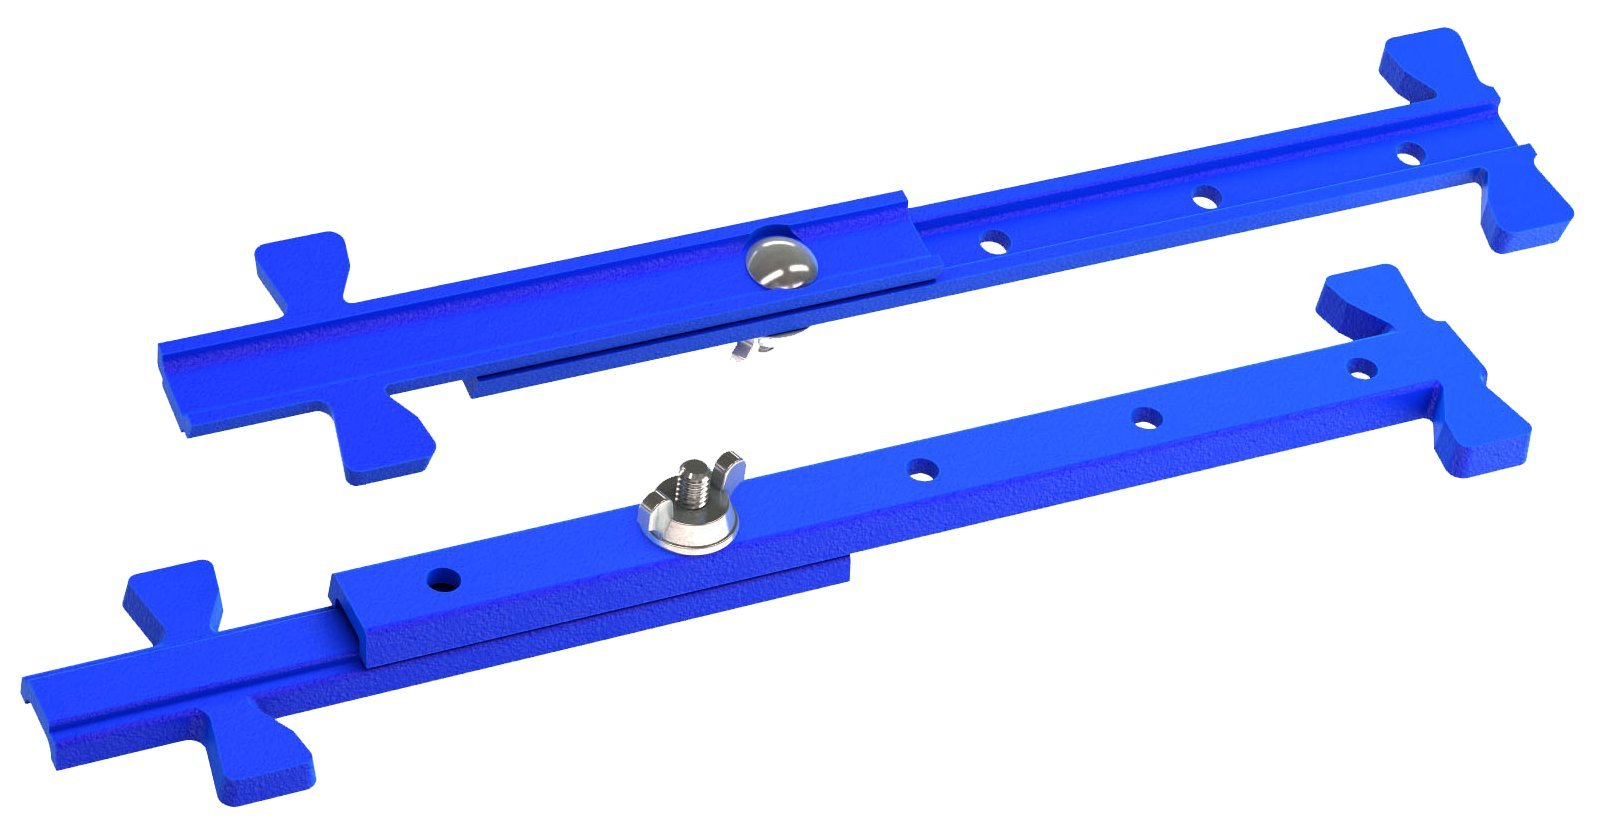 Bon 11-288 4-Inch to 12-Inch Cast Aluminum Adjustable Line Stretchers